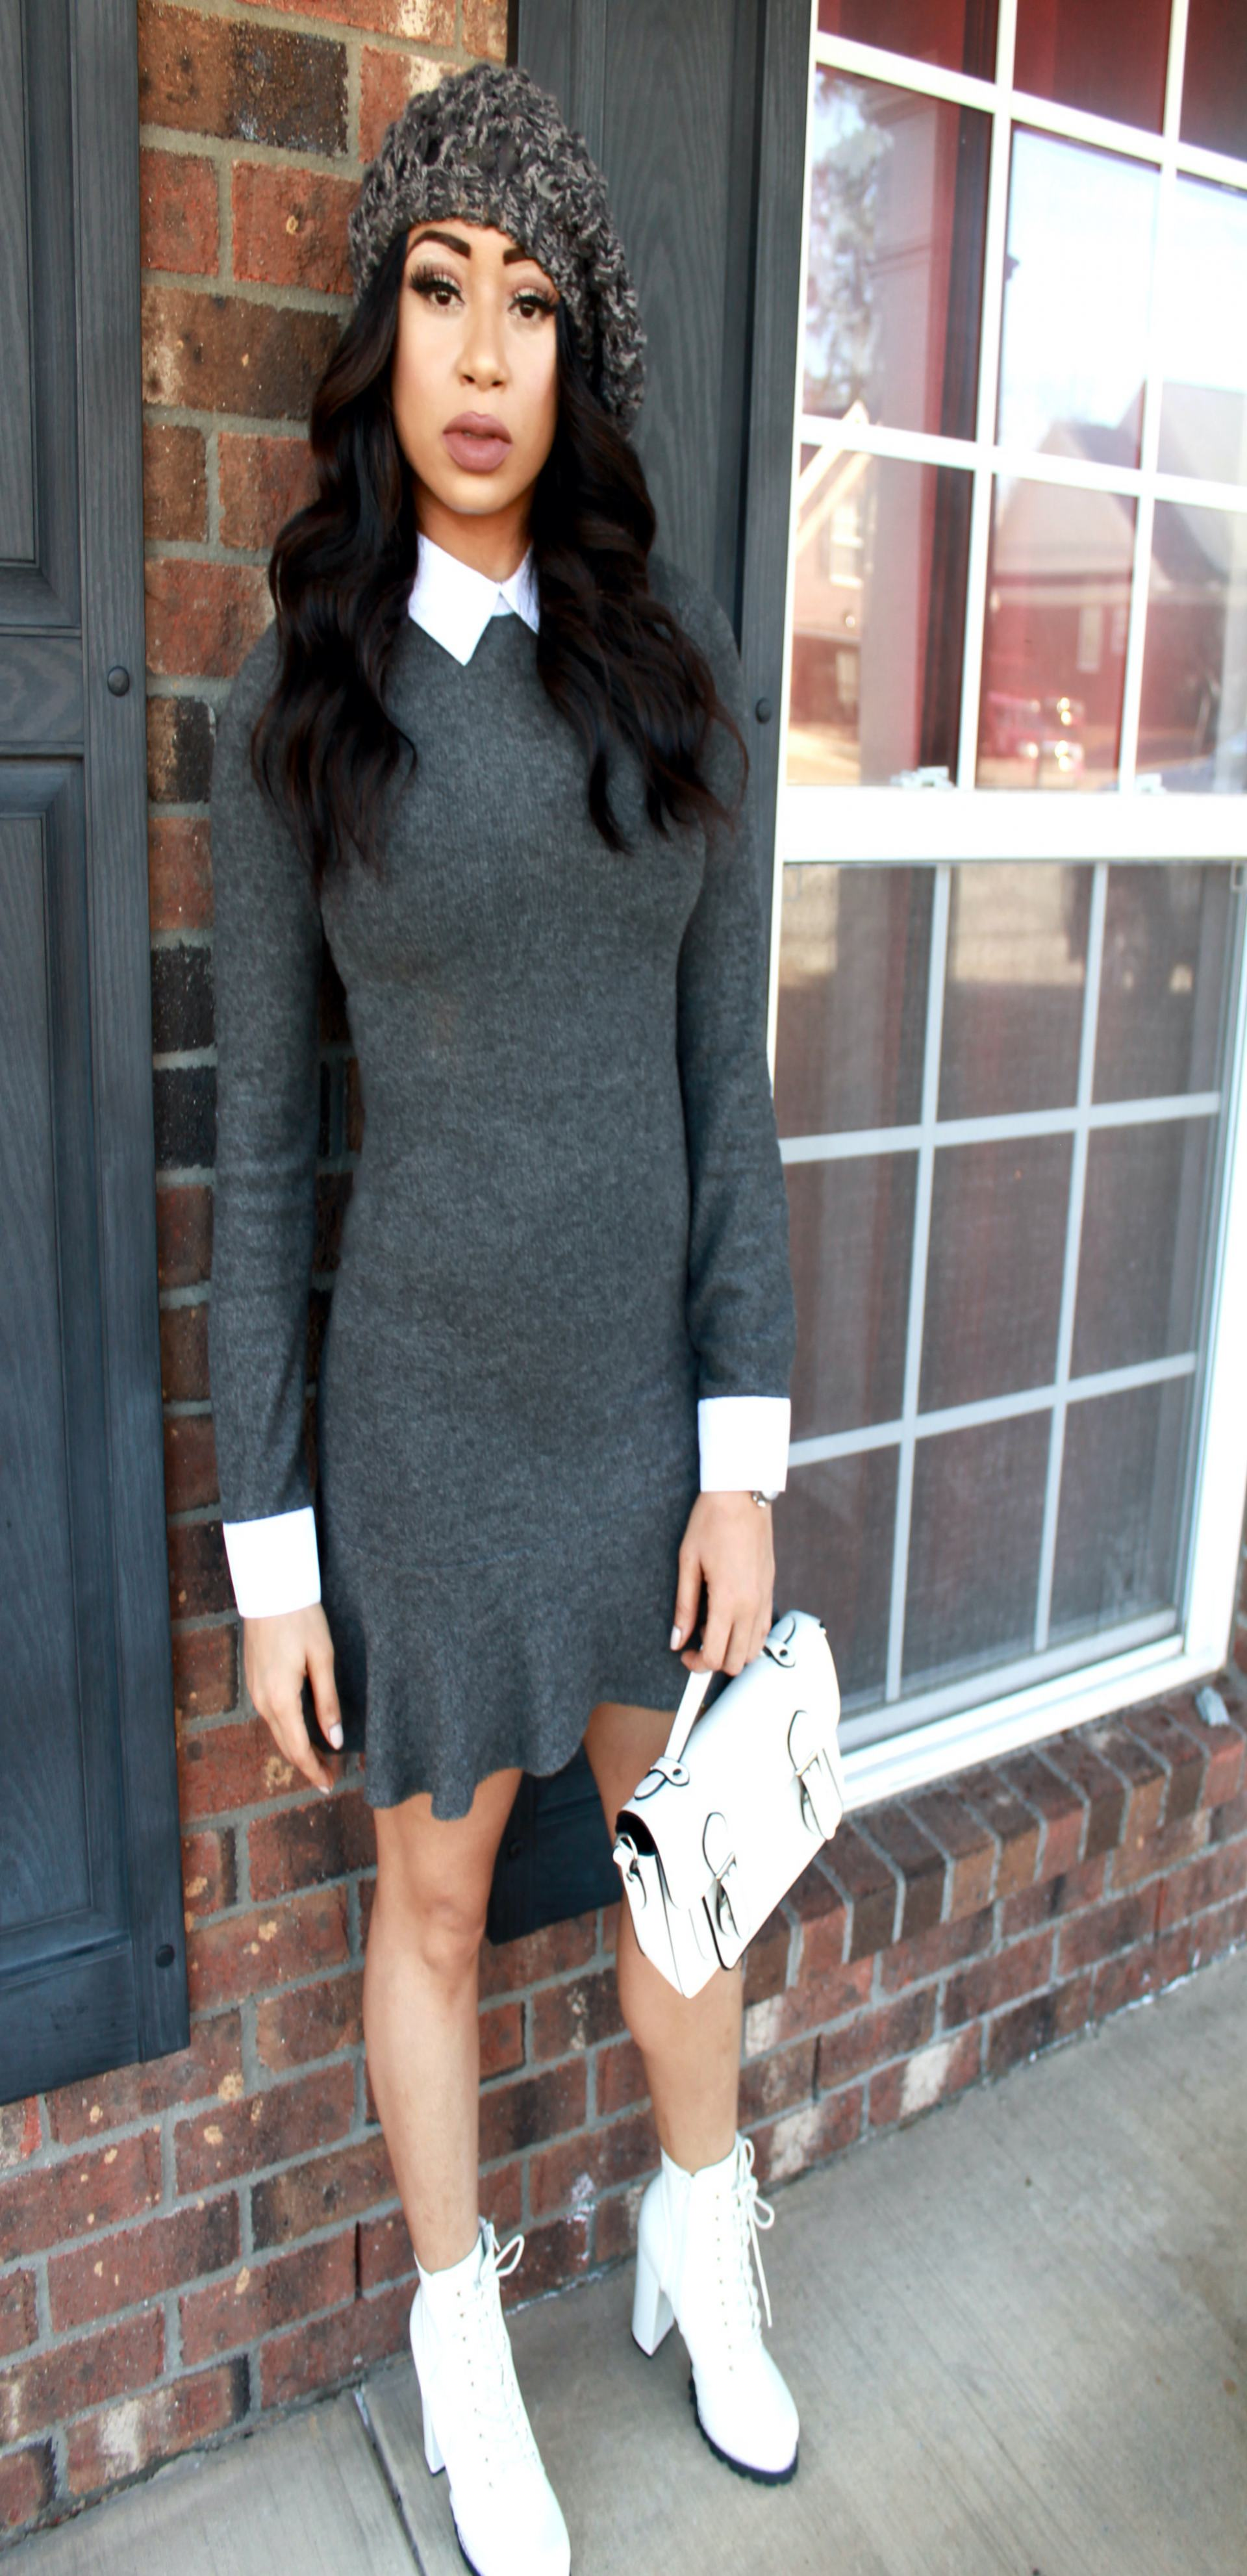 Minidress and ankle boot combination